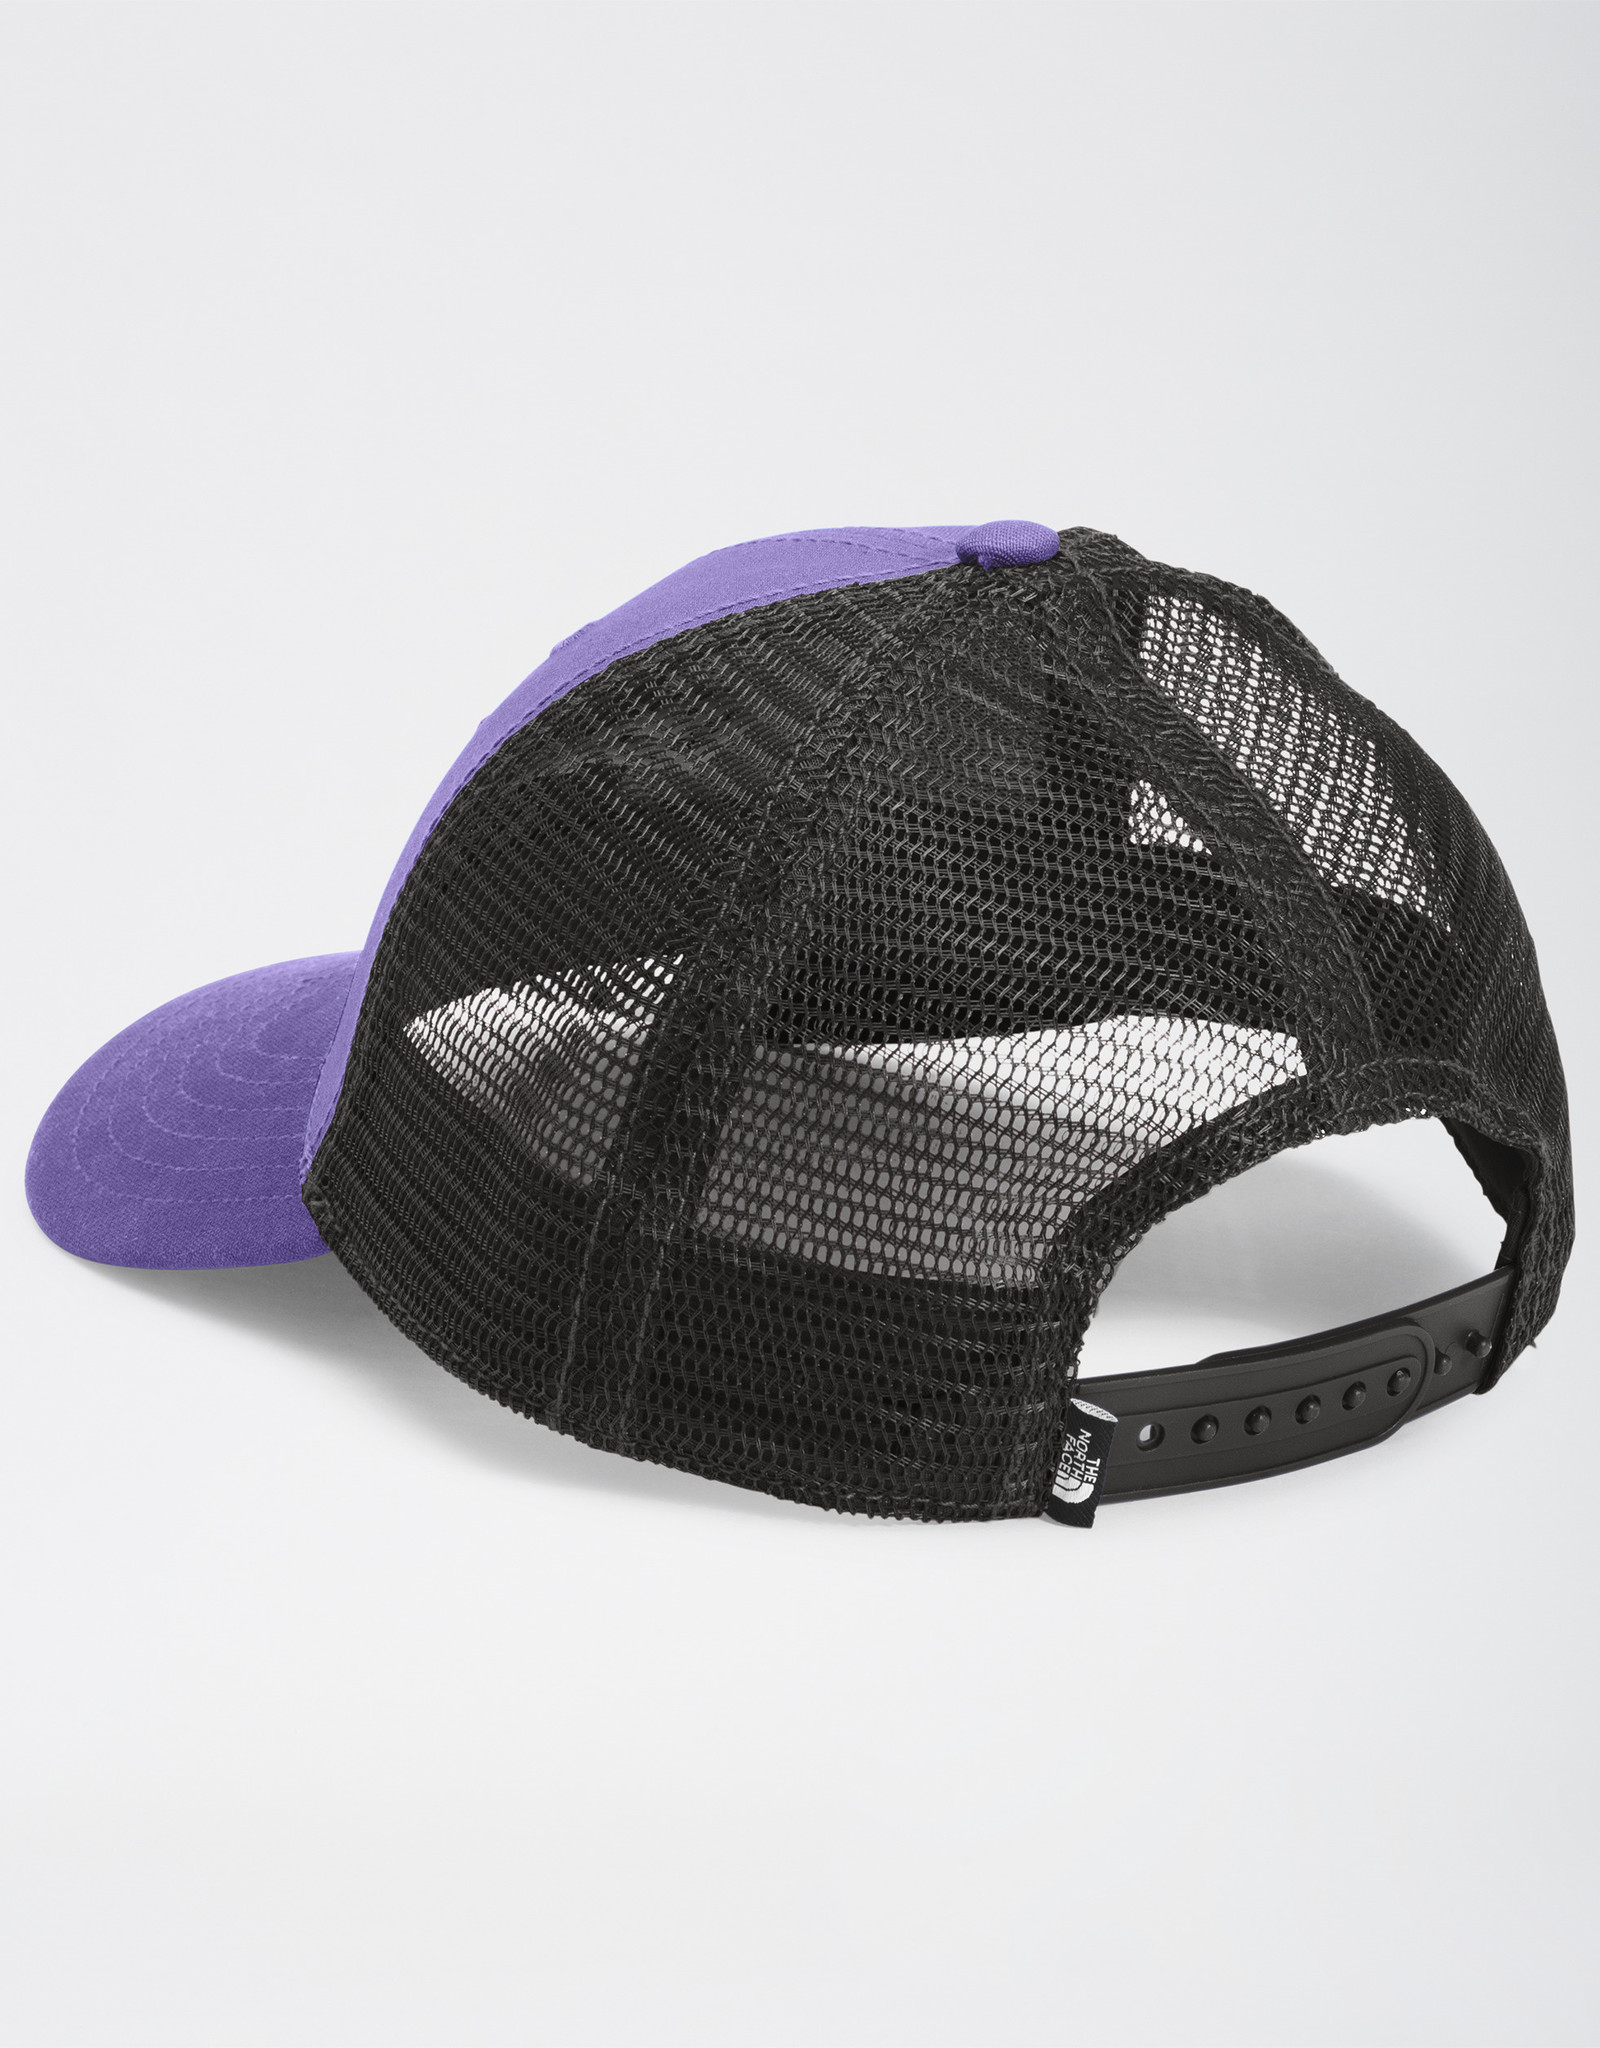 The North Face The North Face Youth Mudder Trucker -S2021